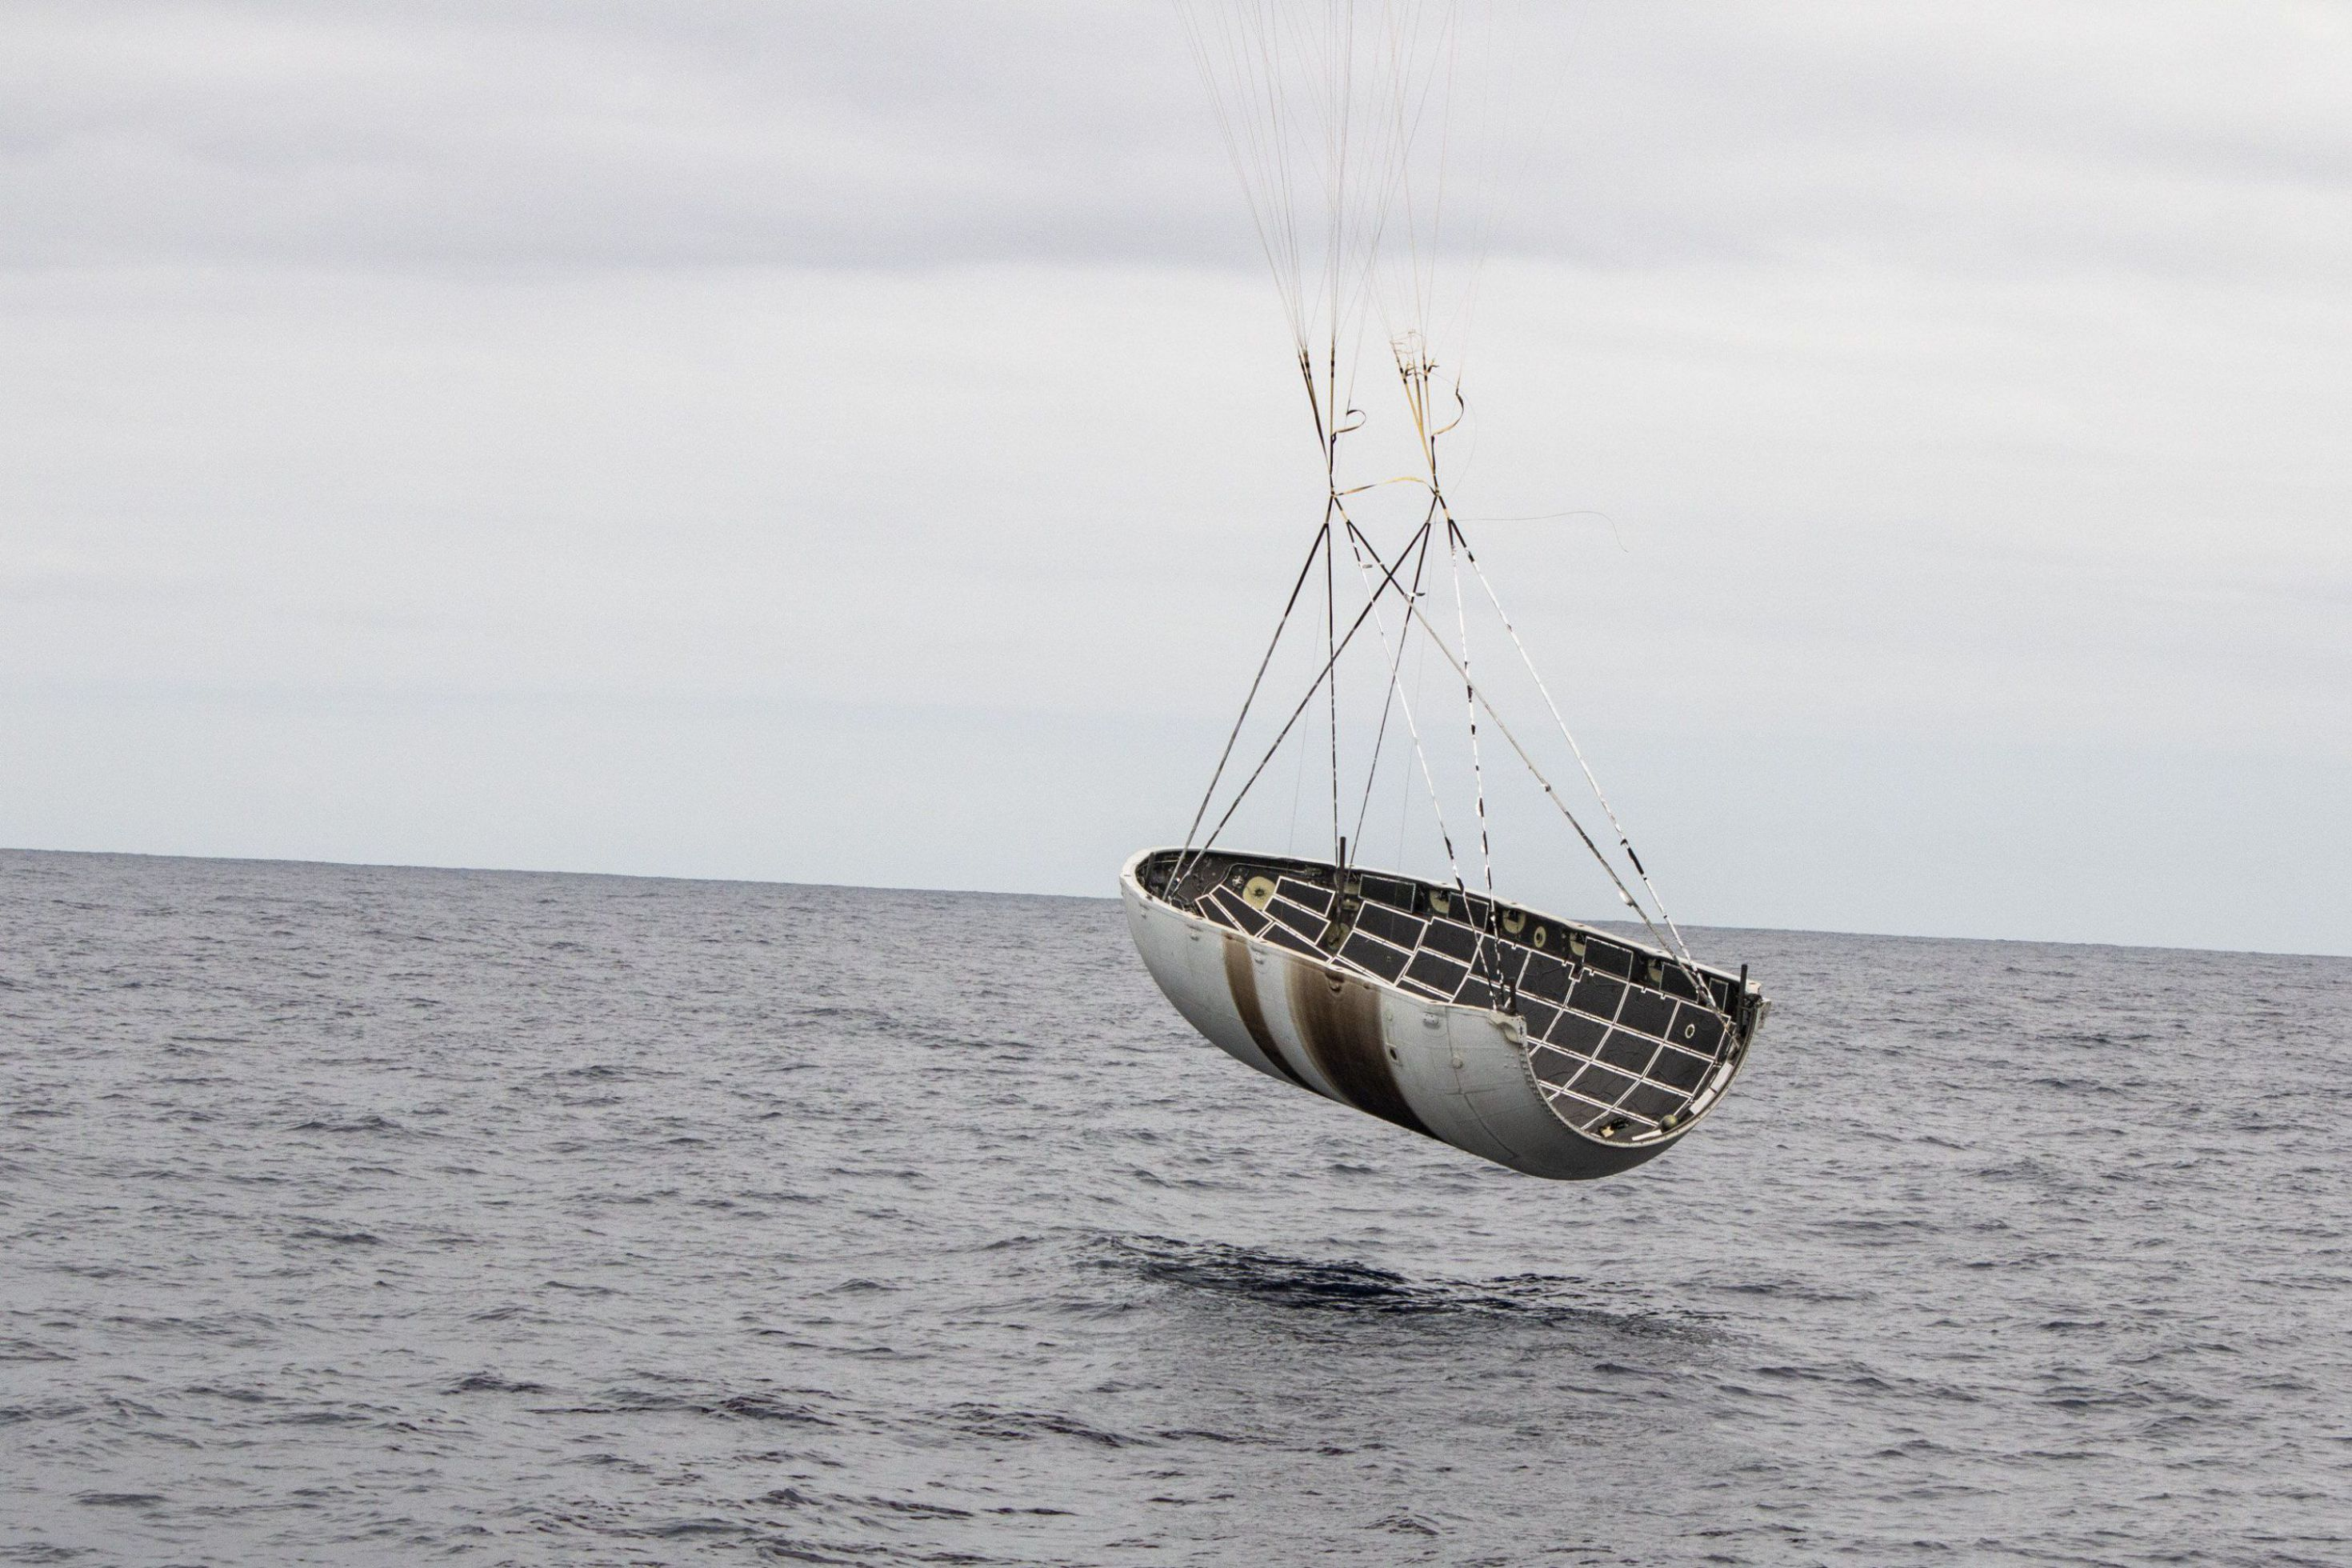 Falcon fairing recovery (SpaceX) 2